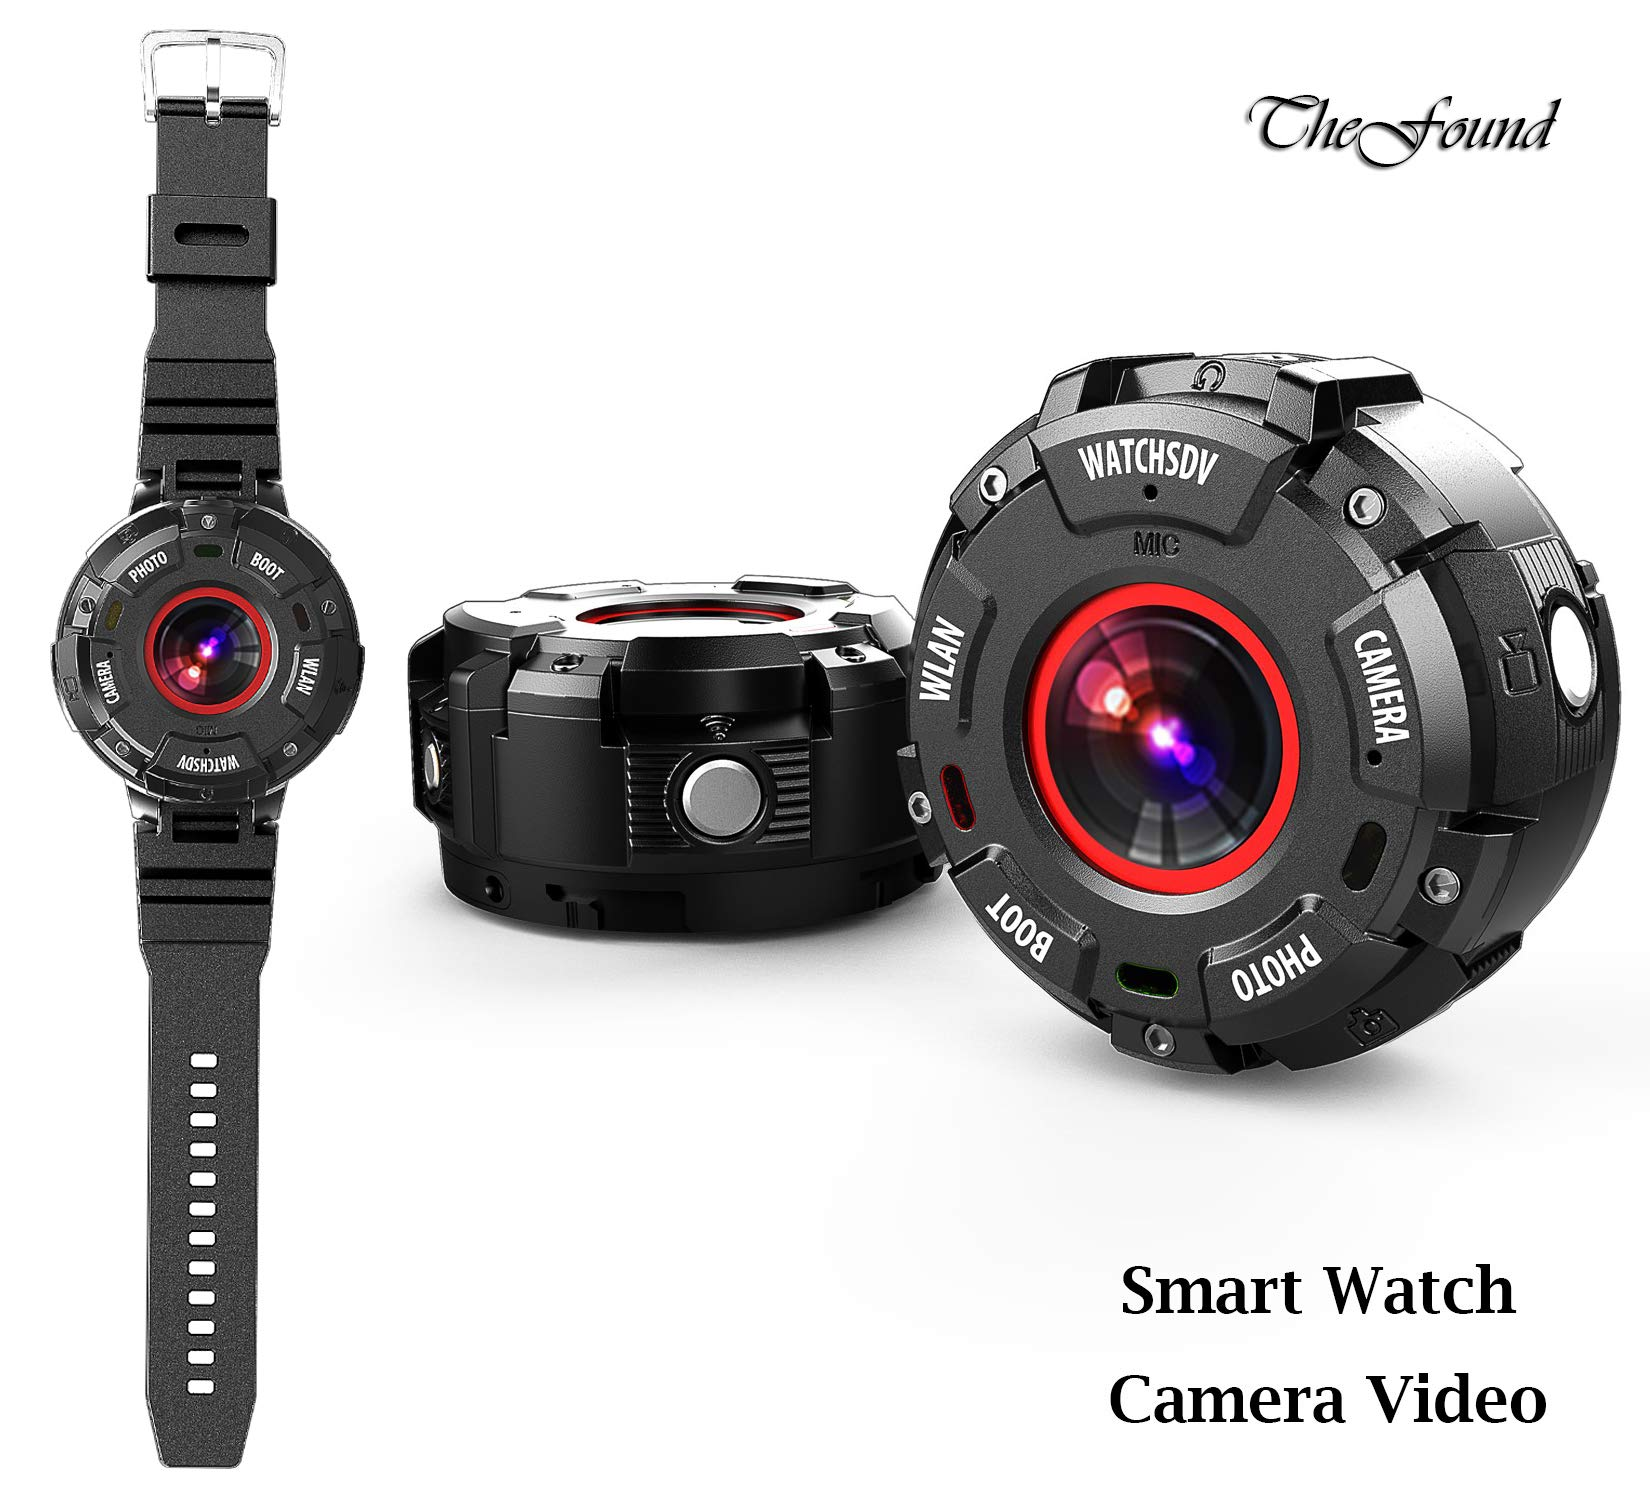 Smart Watch Camera Video Wearable Magnetic HD 1080P WiFi for Outdoor Sports Underwater (Black)